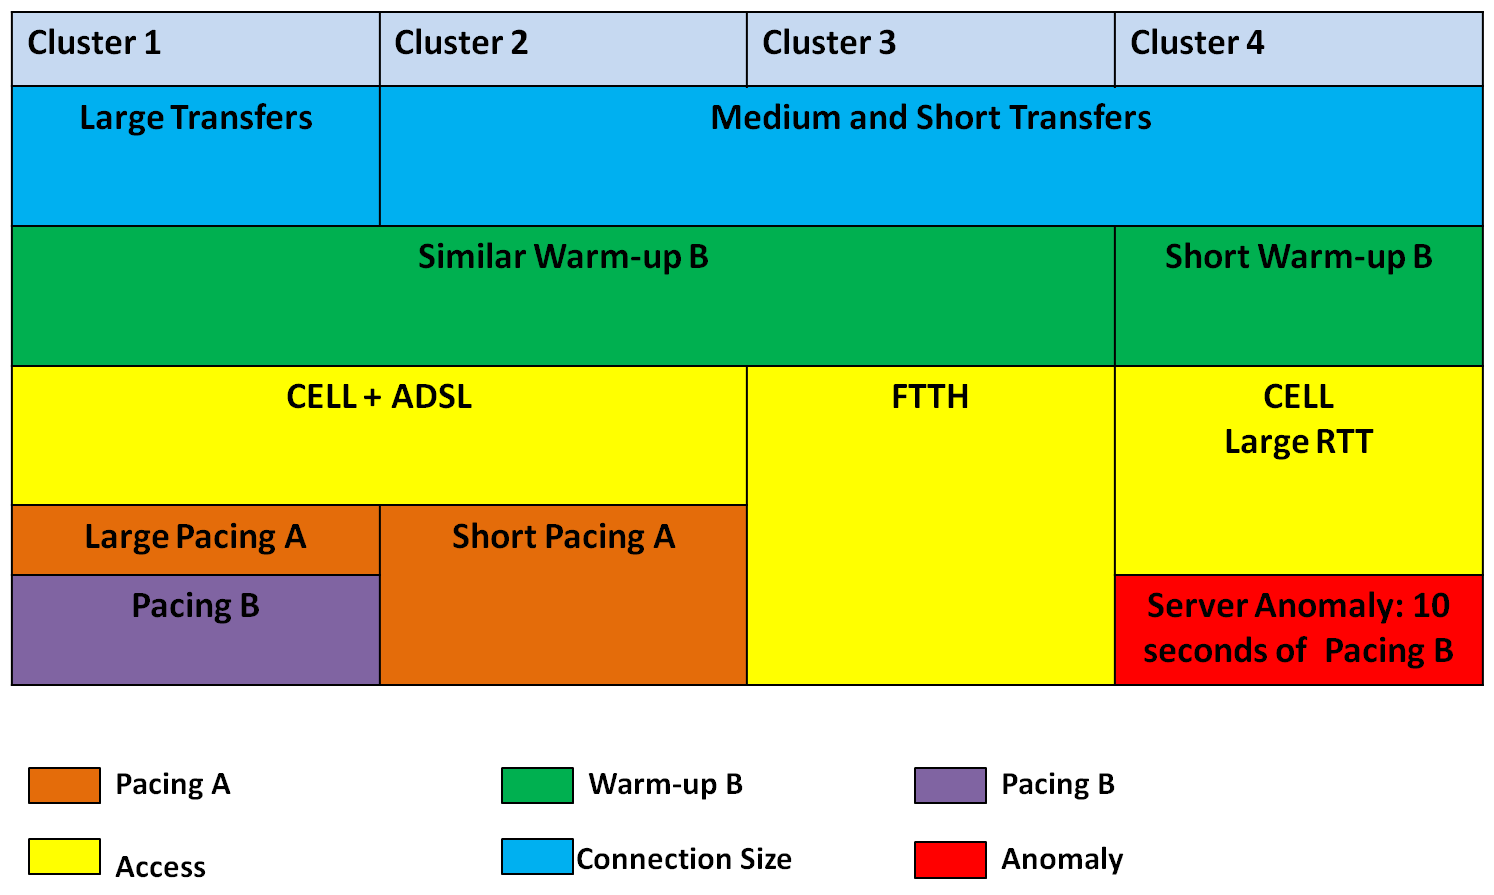 52 B. DATA TIME BREAK-DOWN FOR MAIL AND WEBMAIL TRAFFIC to FTTH connections, while cluster corresponds to Cellular connections with largest RTTs.